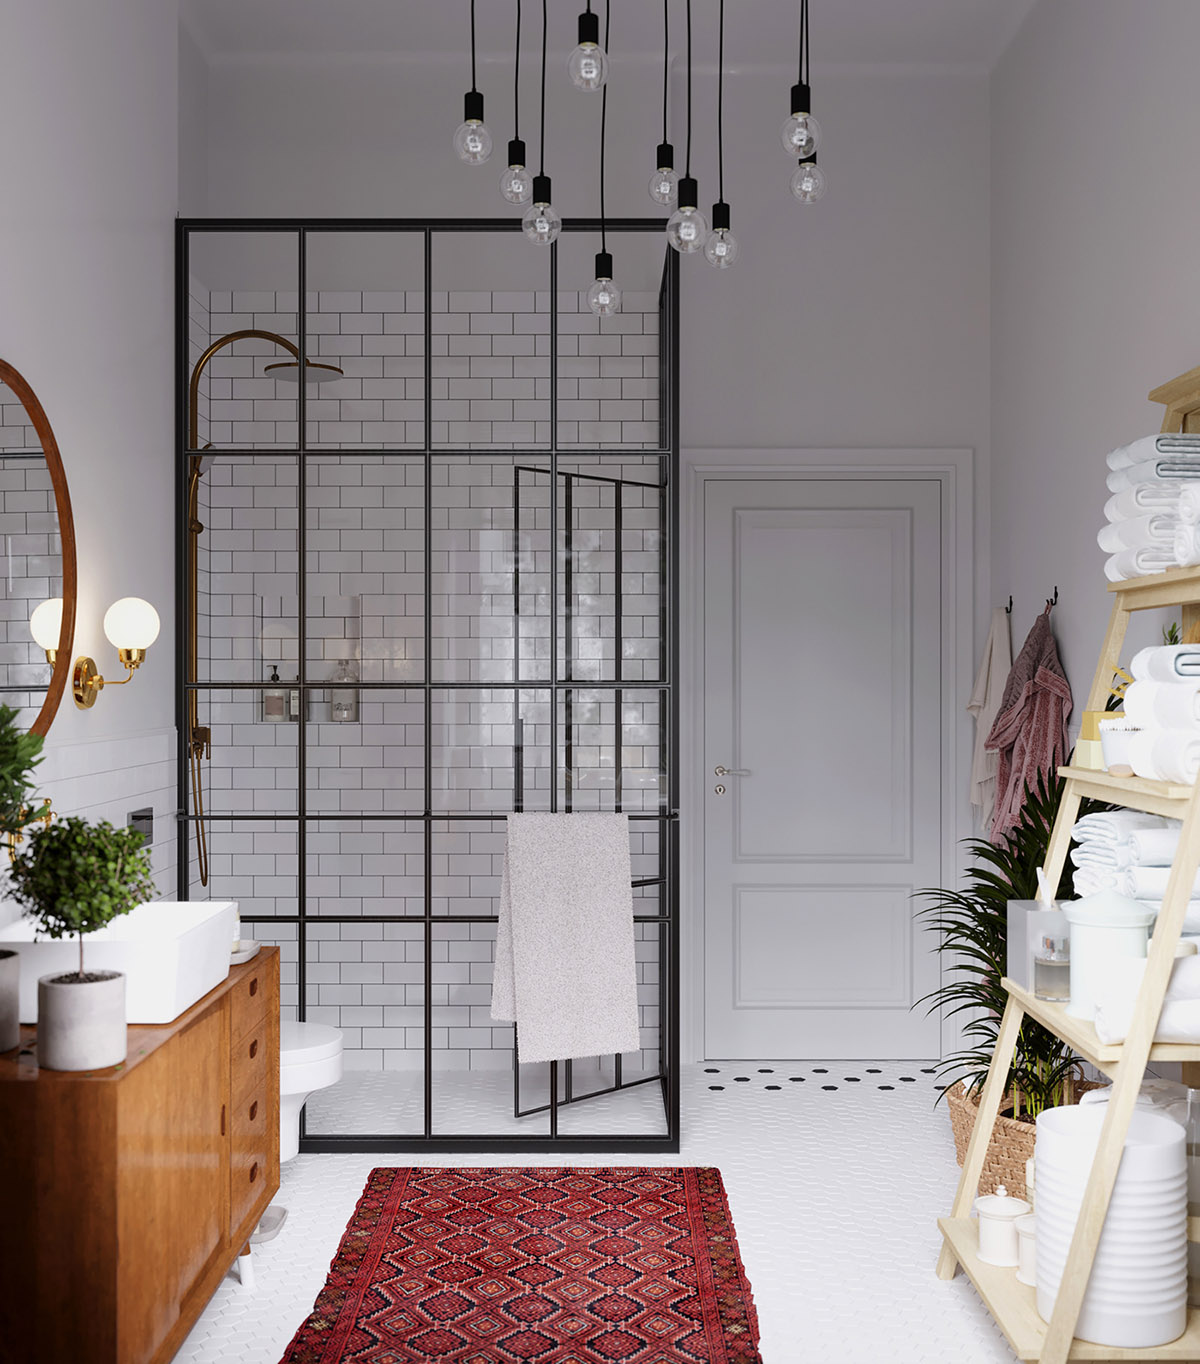 Earthy Eclectic Scandinavian Style Interior images 25